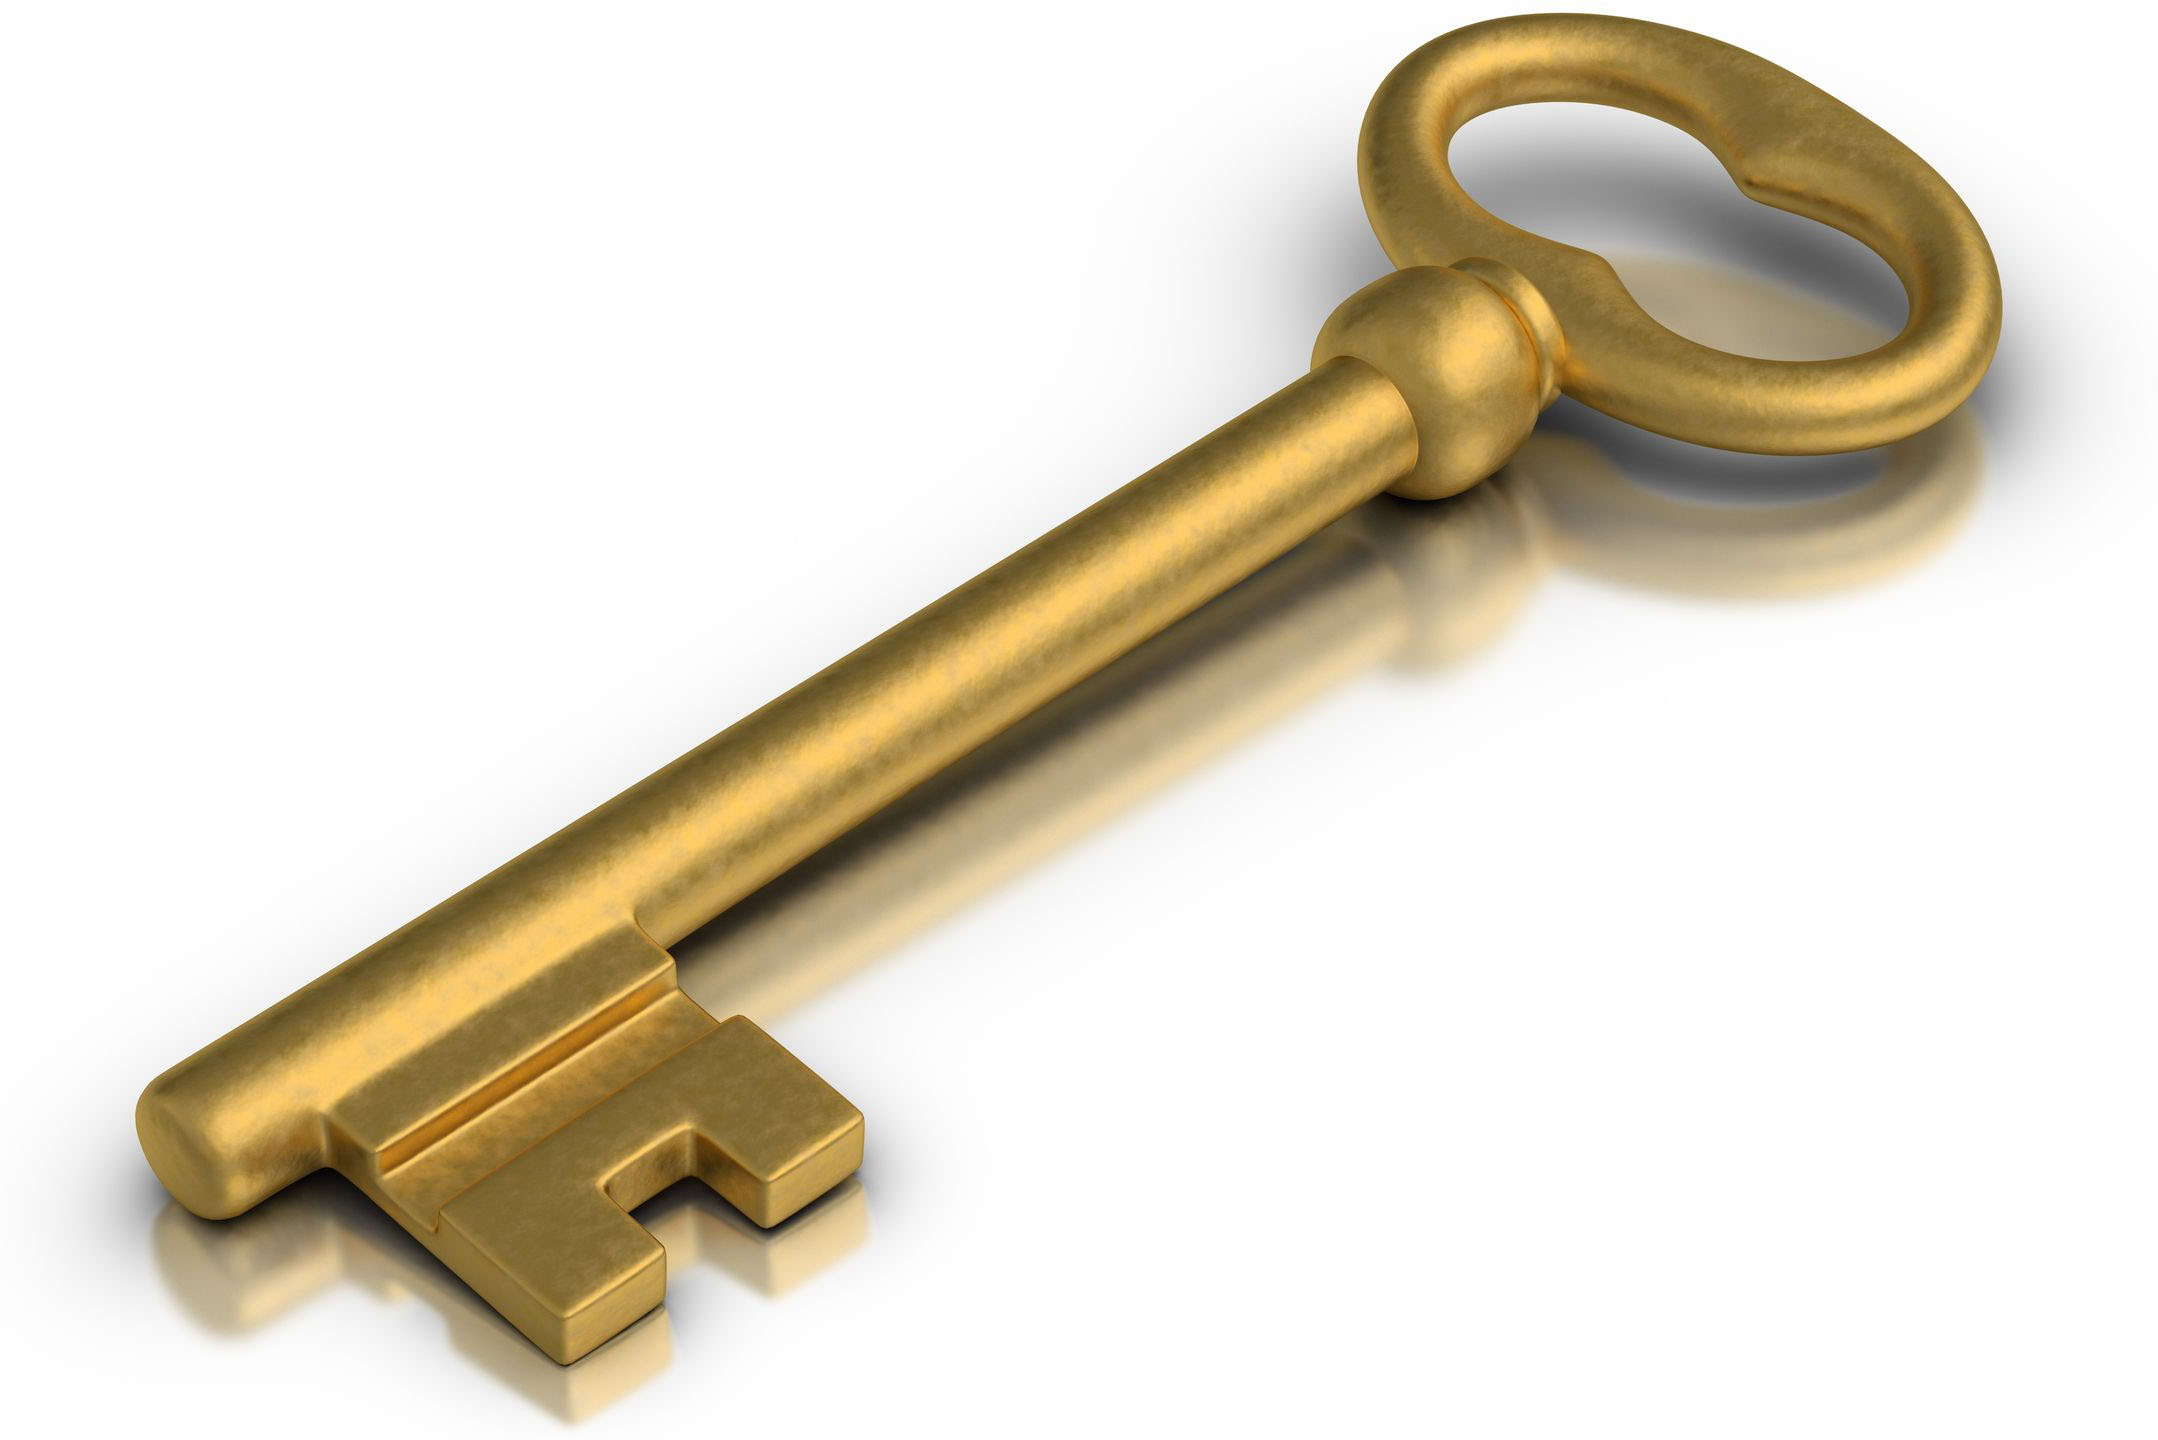 Golden Key - LIBERTY (SECURITY PRIVACY SAFETY) FREE WILL - UNIVERSAL SPENDING AUTHORITY - A GUARANTEED INCOME - NOW YOU OWN YOUR HOME AND LAND - NOW YOU HAVE AN INCOME